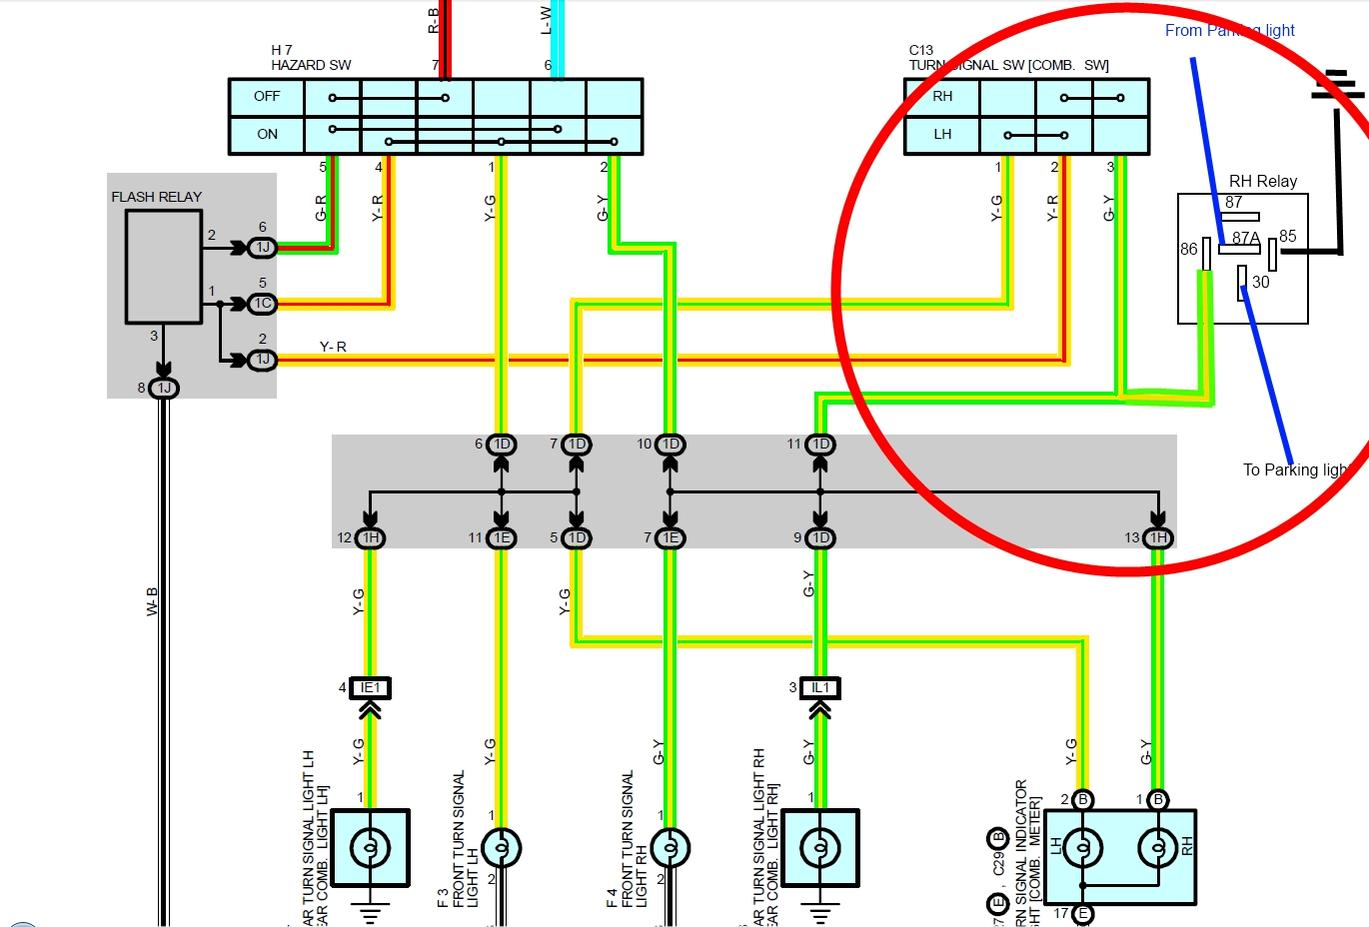 wiring diagram for spotlights on hilux 2007 fxst offroad lights toyota 4runner forum largest